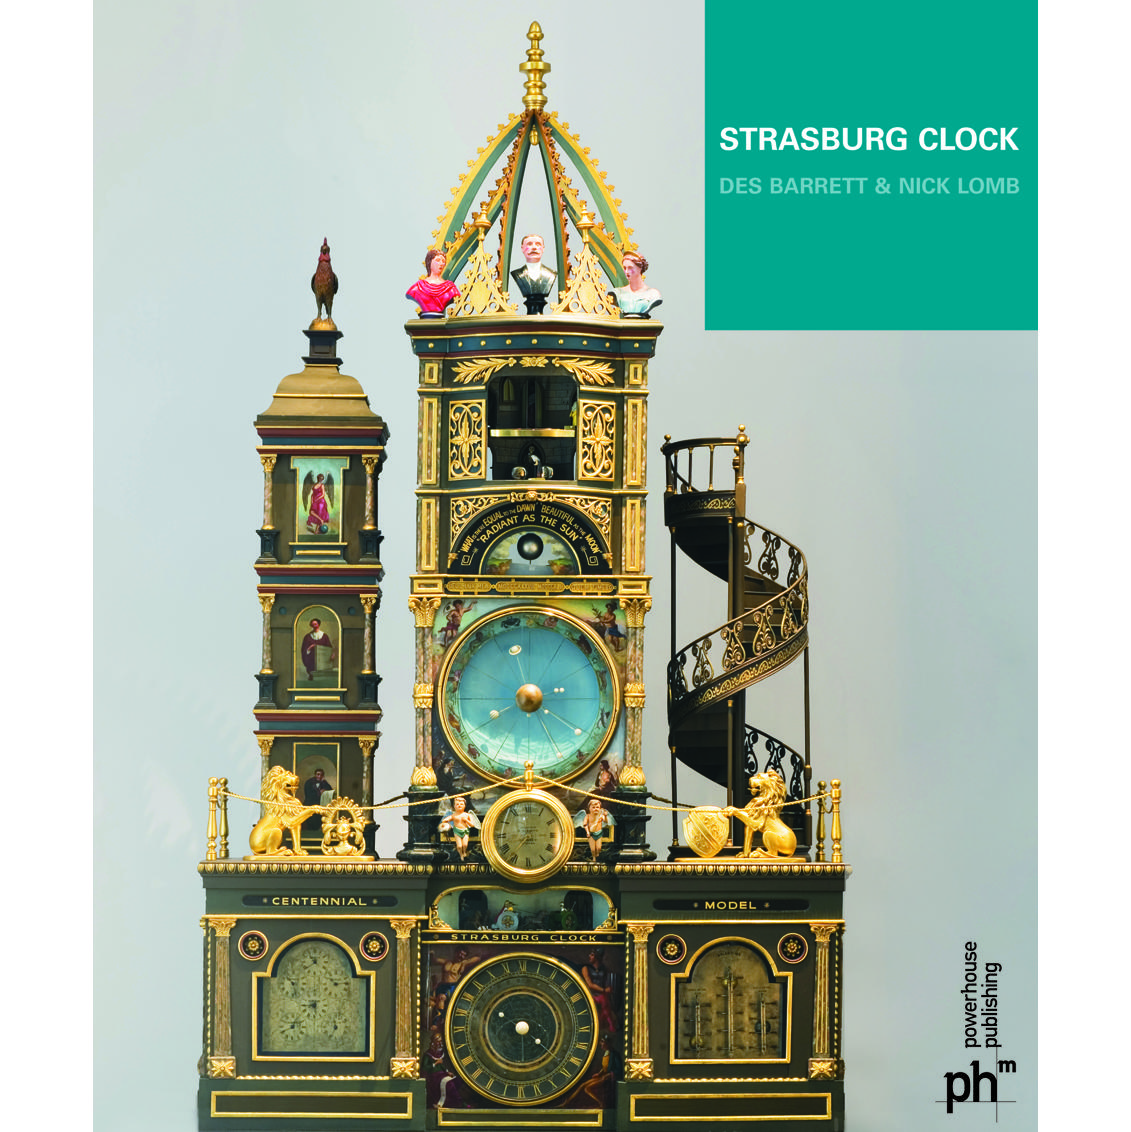 Booklet cover, Strasburg Clock by Des Barrett and Nick Lomb.